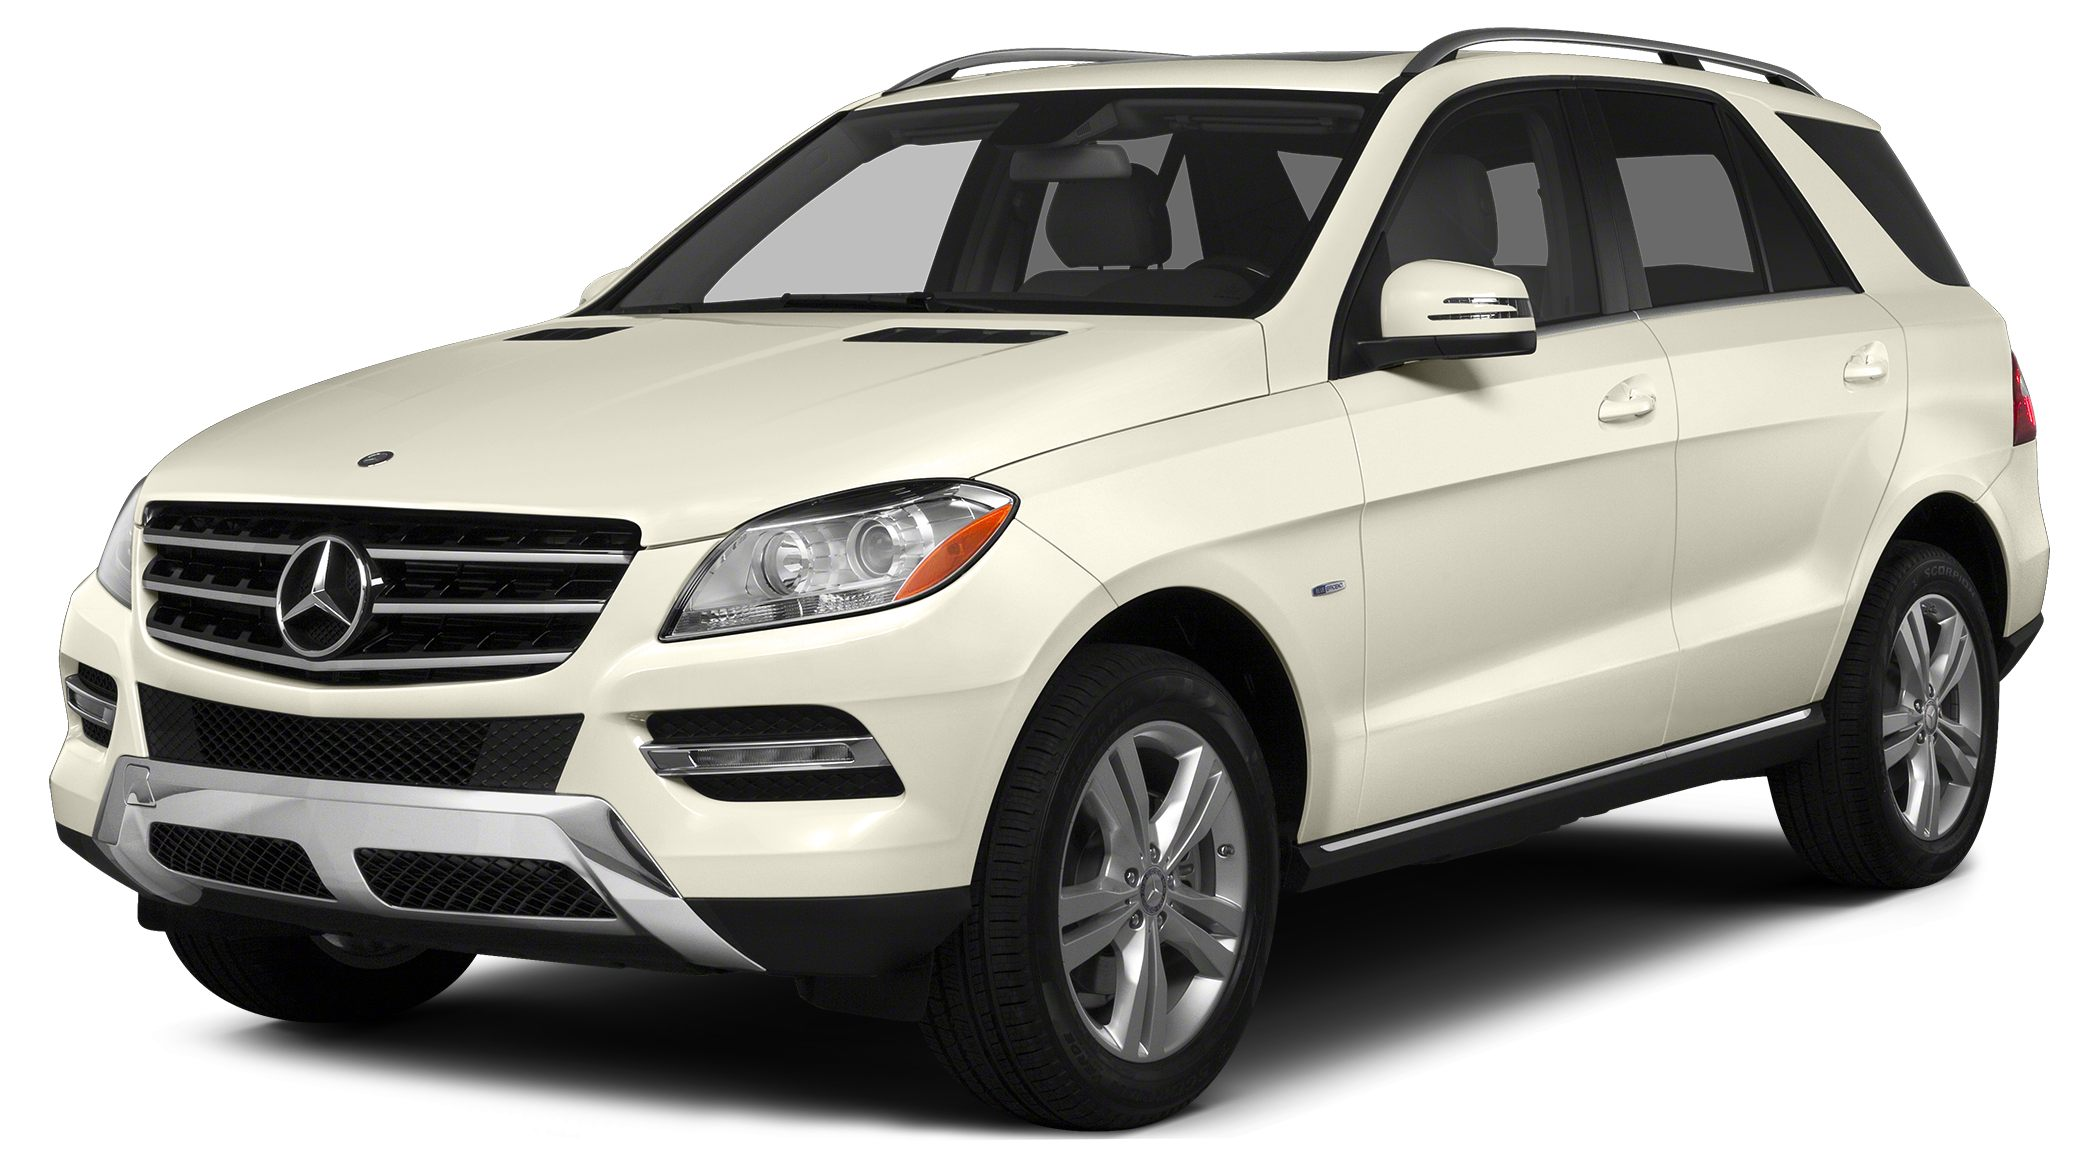 2014 MERCEDES M-Class ML350 4MATIC CERTIFIED PRE-OWNED CARFAX CERTIFIED 2014 MERCEDES ML350